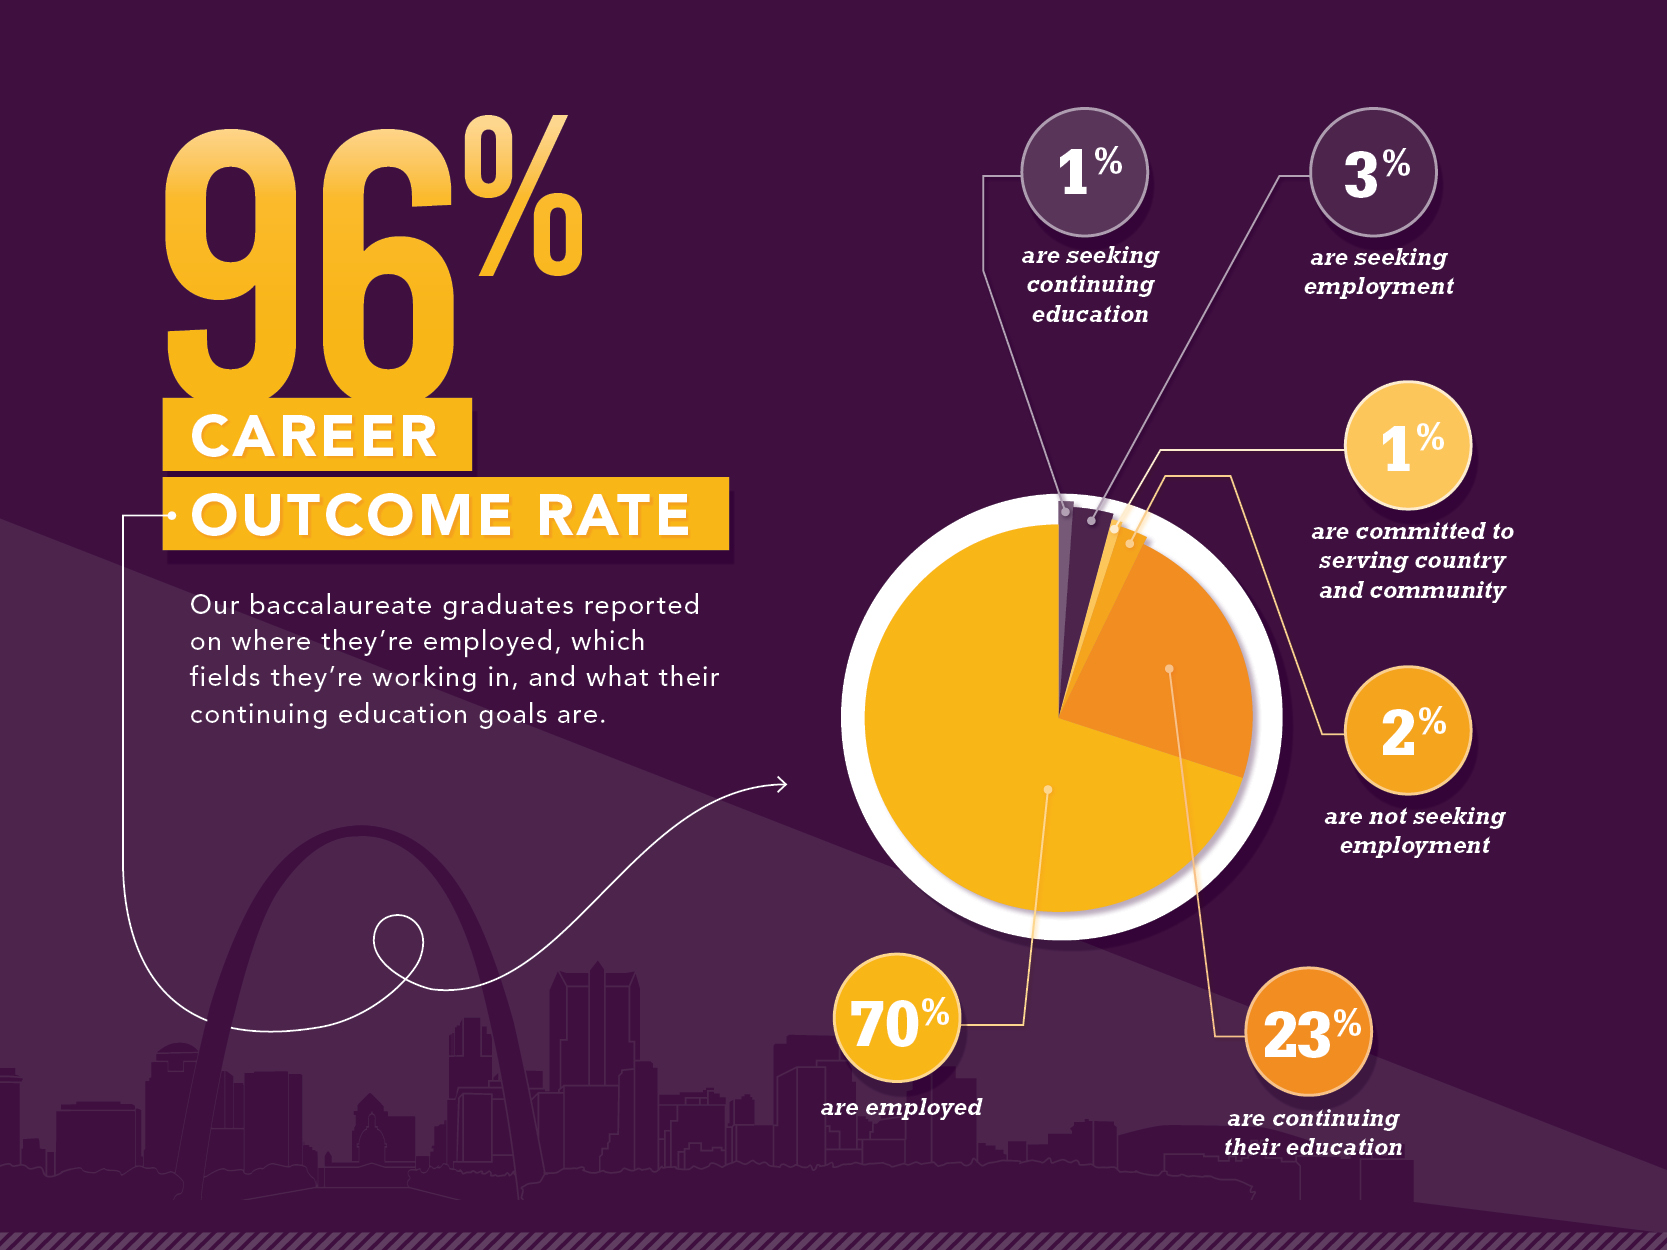 Career_Outcomes_Infographic_(Class_of_2015)_(WEB_Career_Outcome_Rate)_16